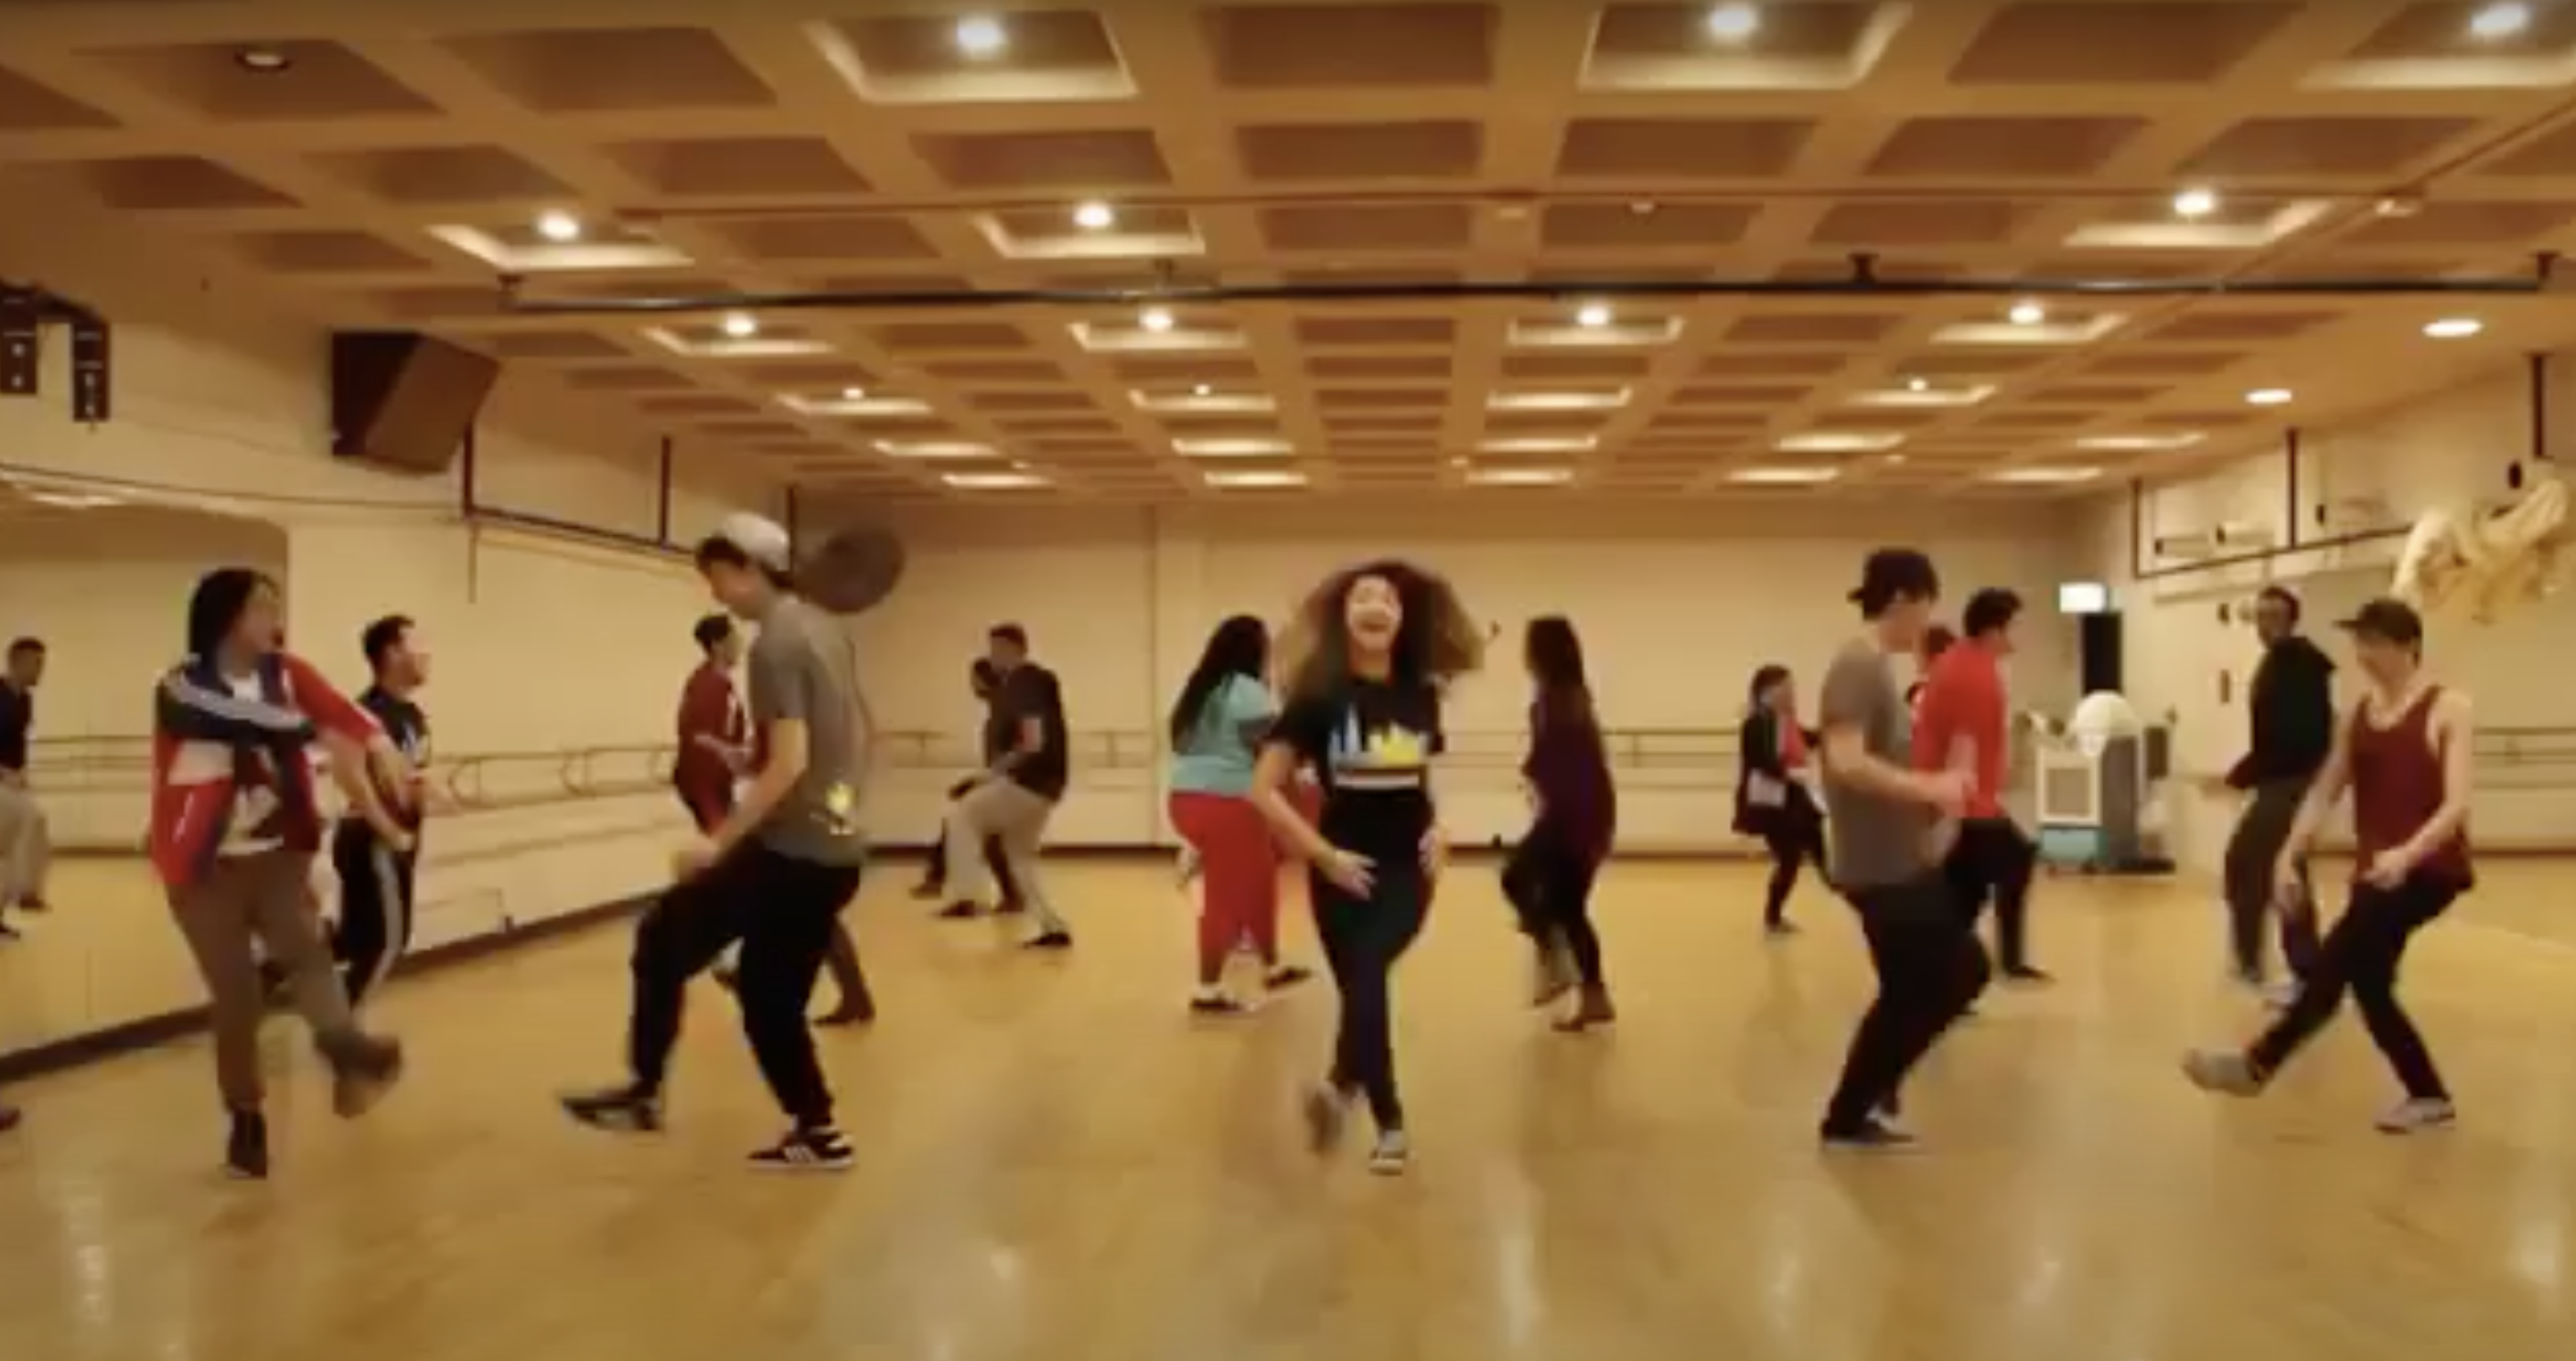 A group of dancers of many races dances in a dance studio